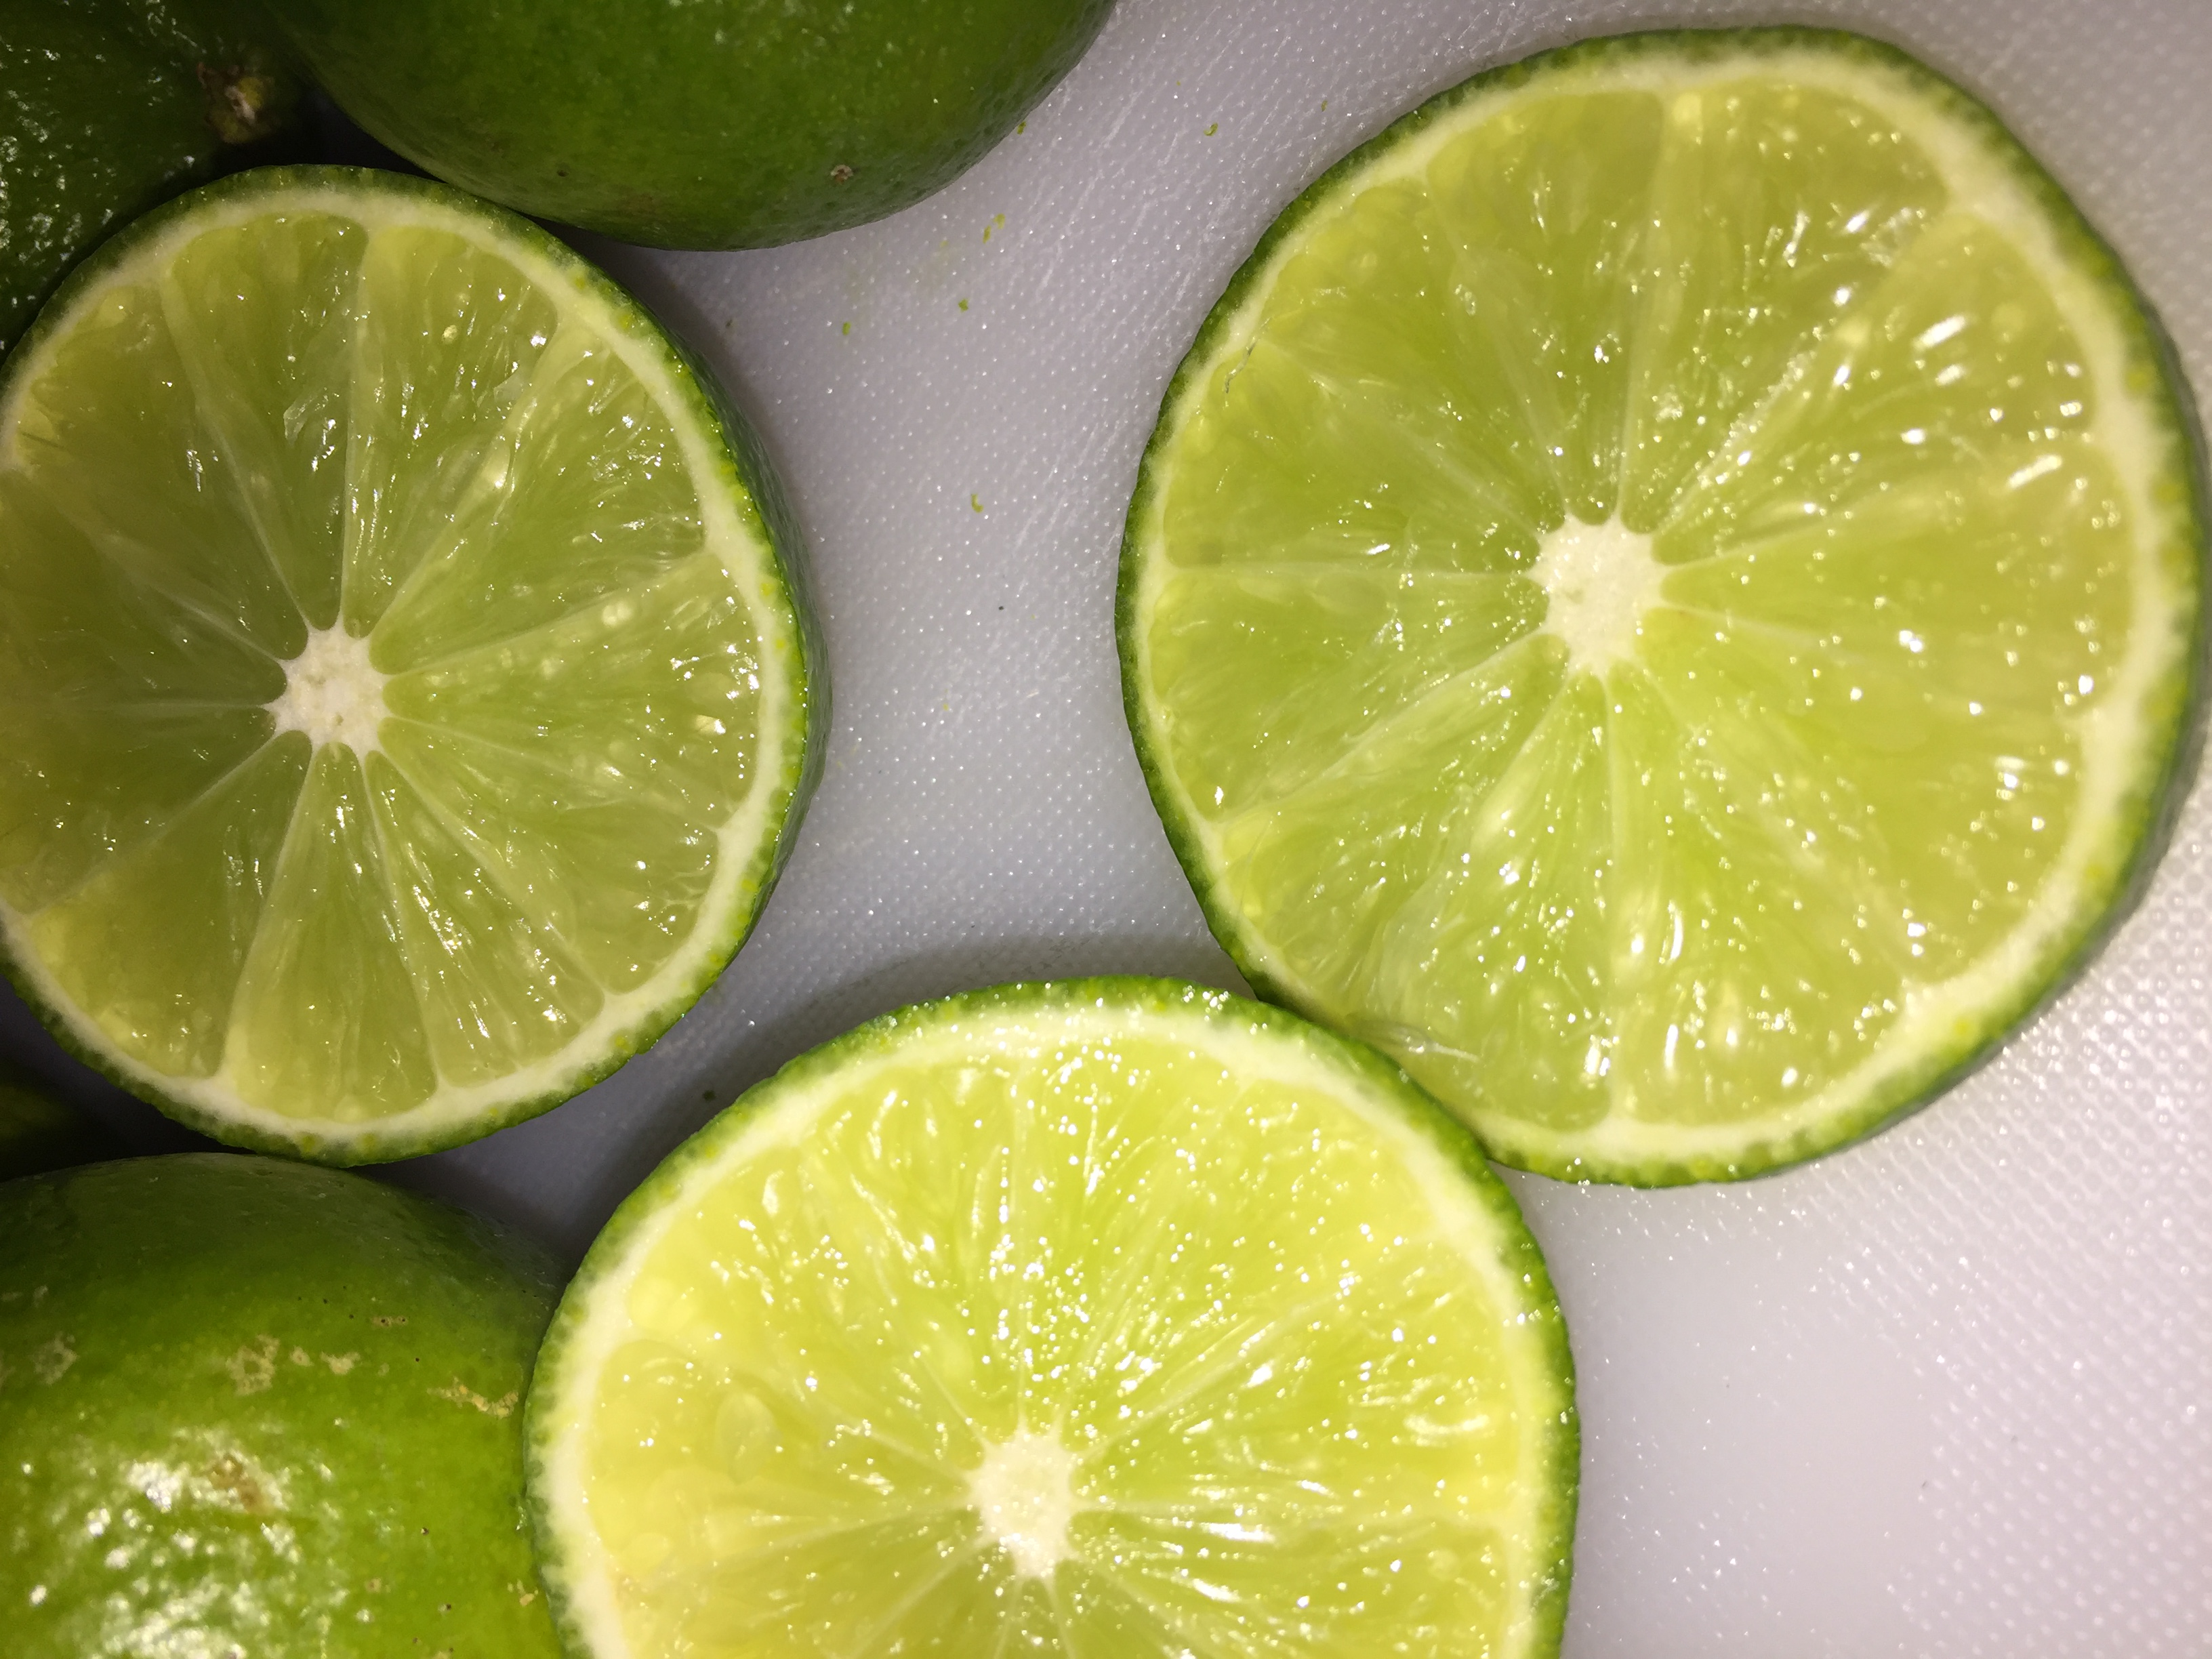 lime-lemon-water-life-slices-of-lime